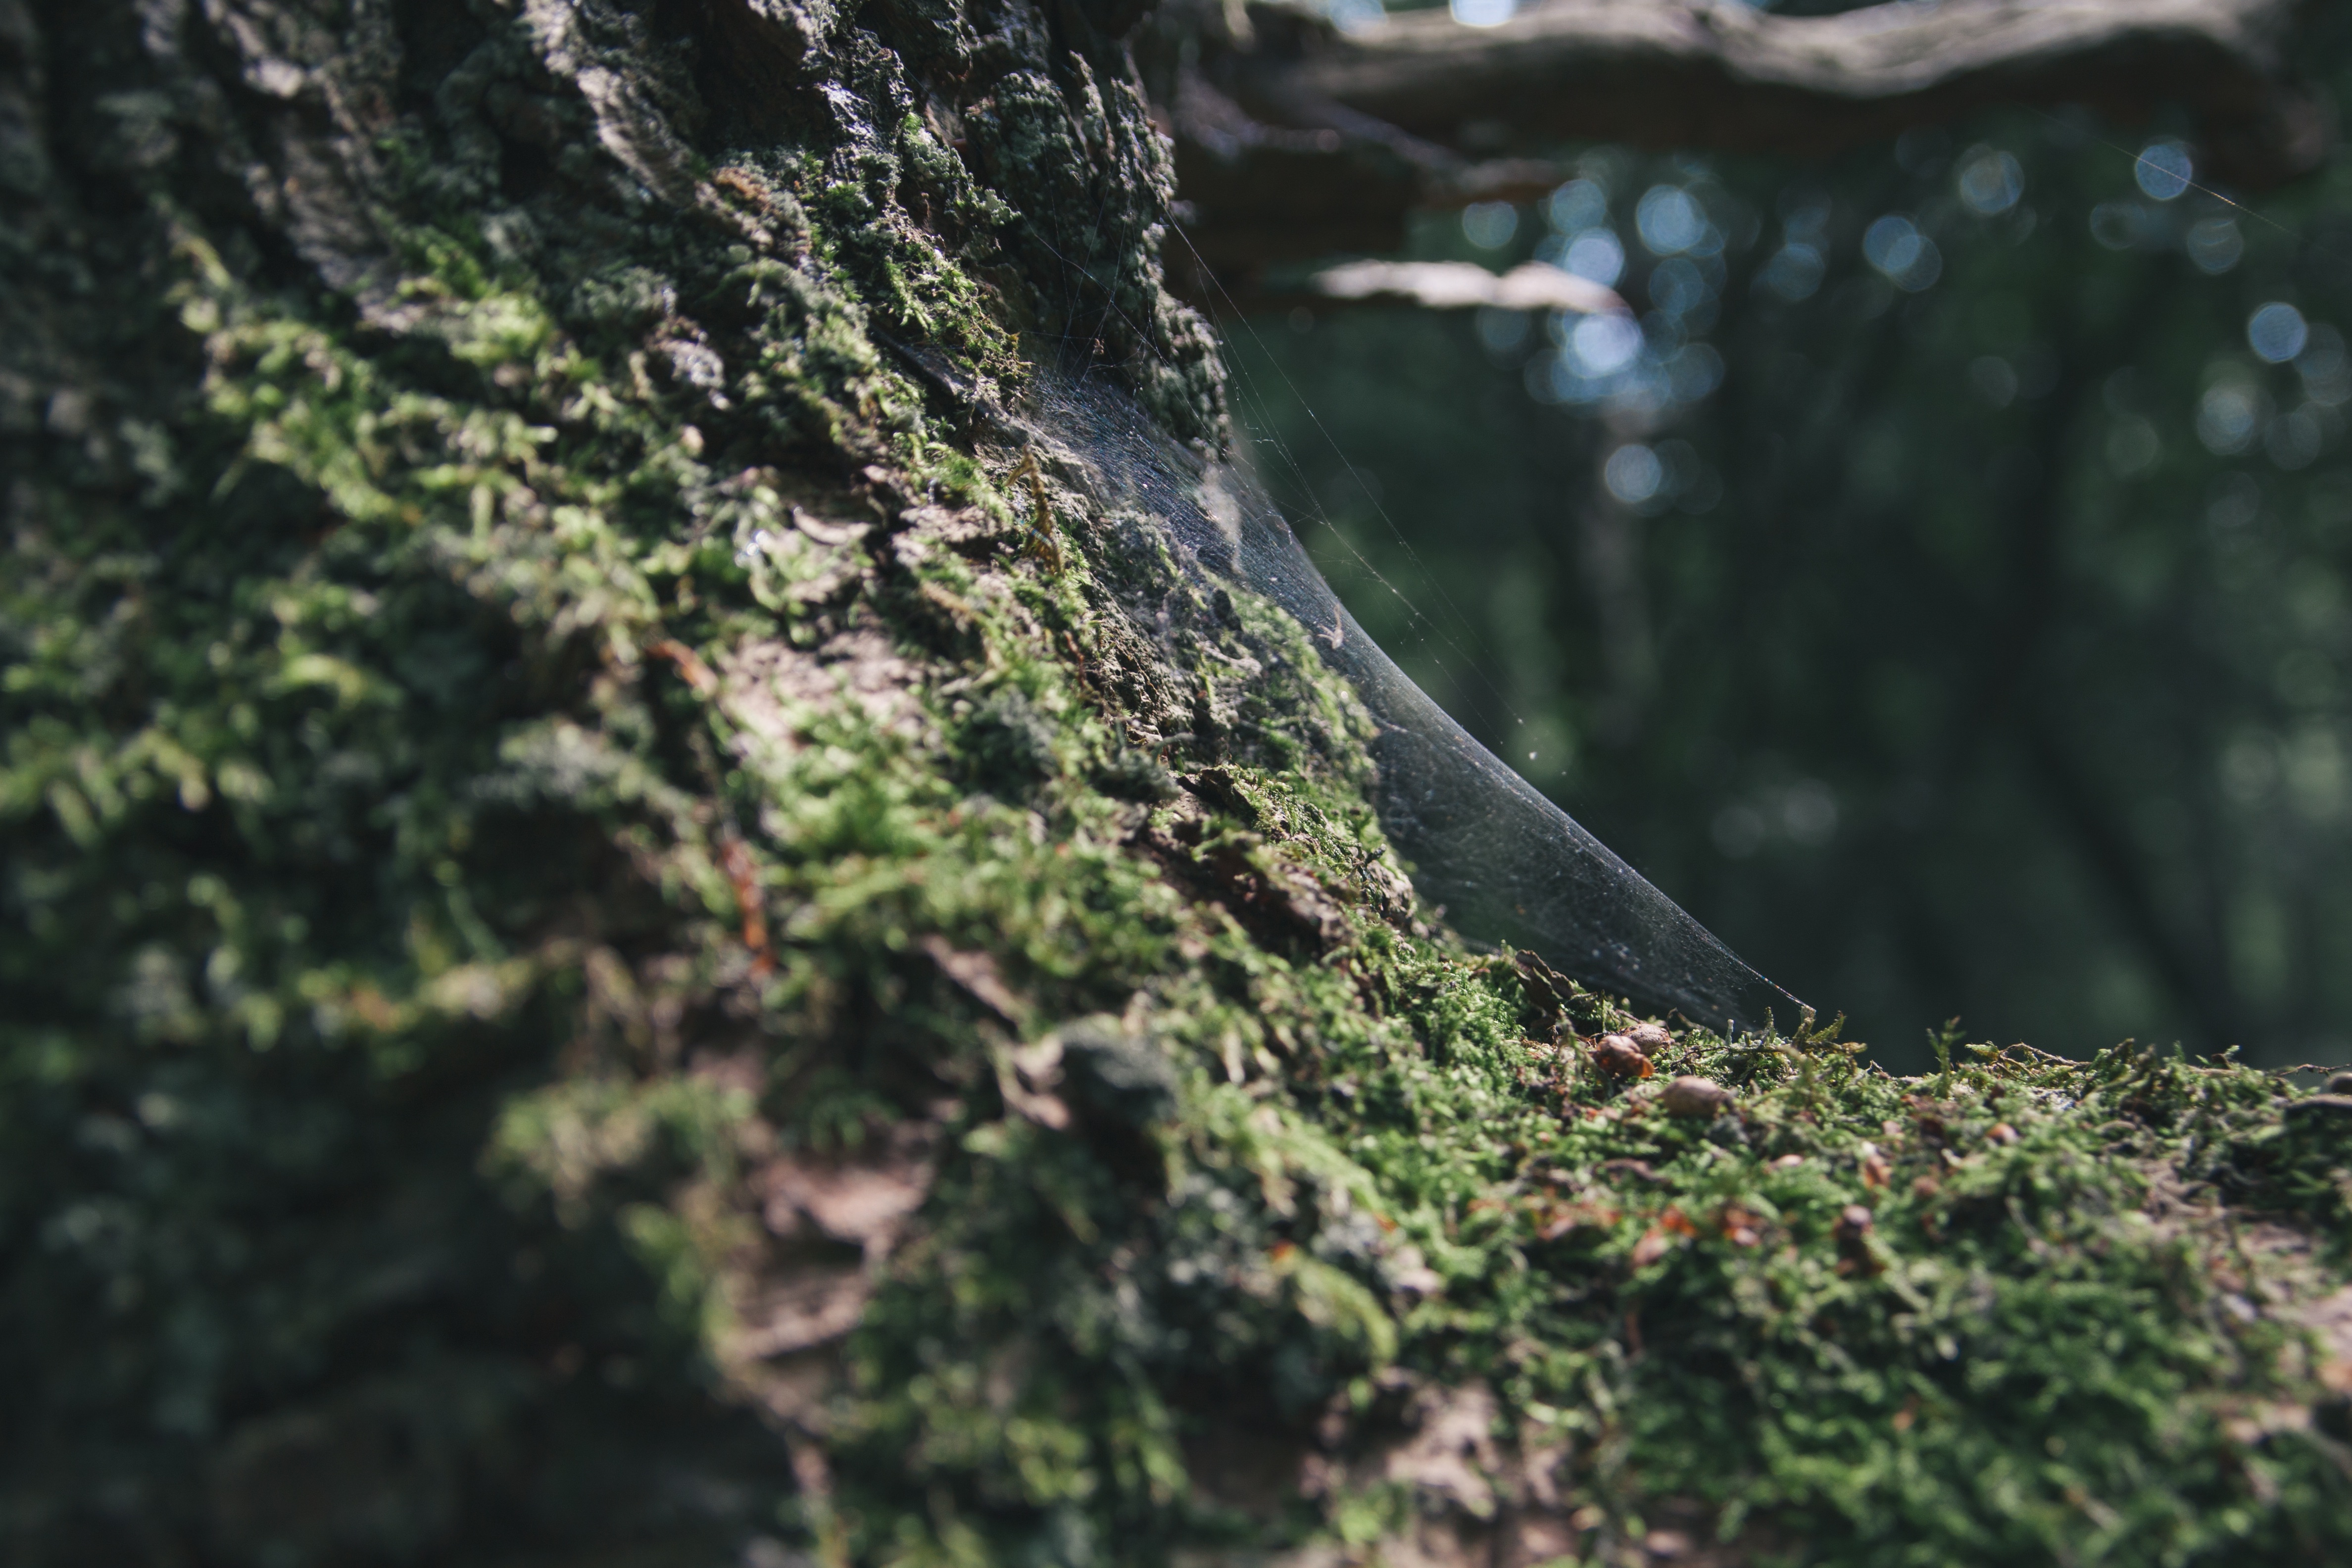 Spider webs on tree branches.